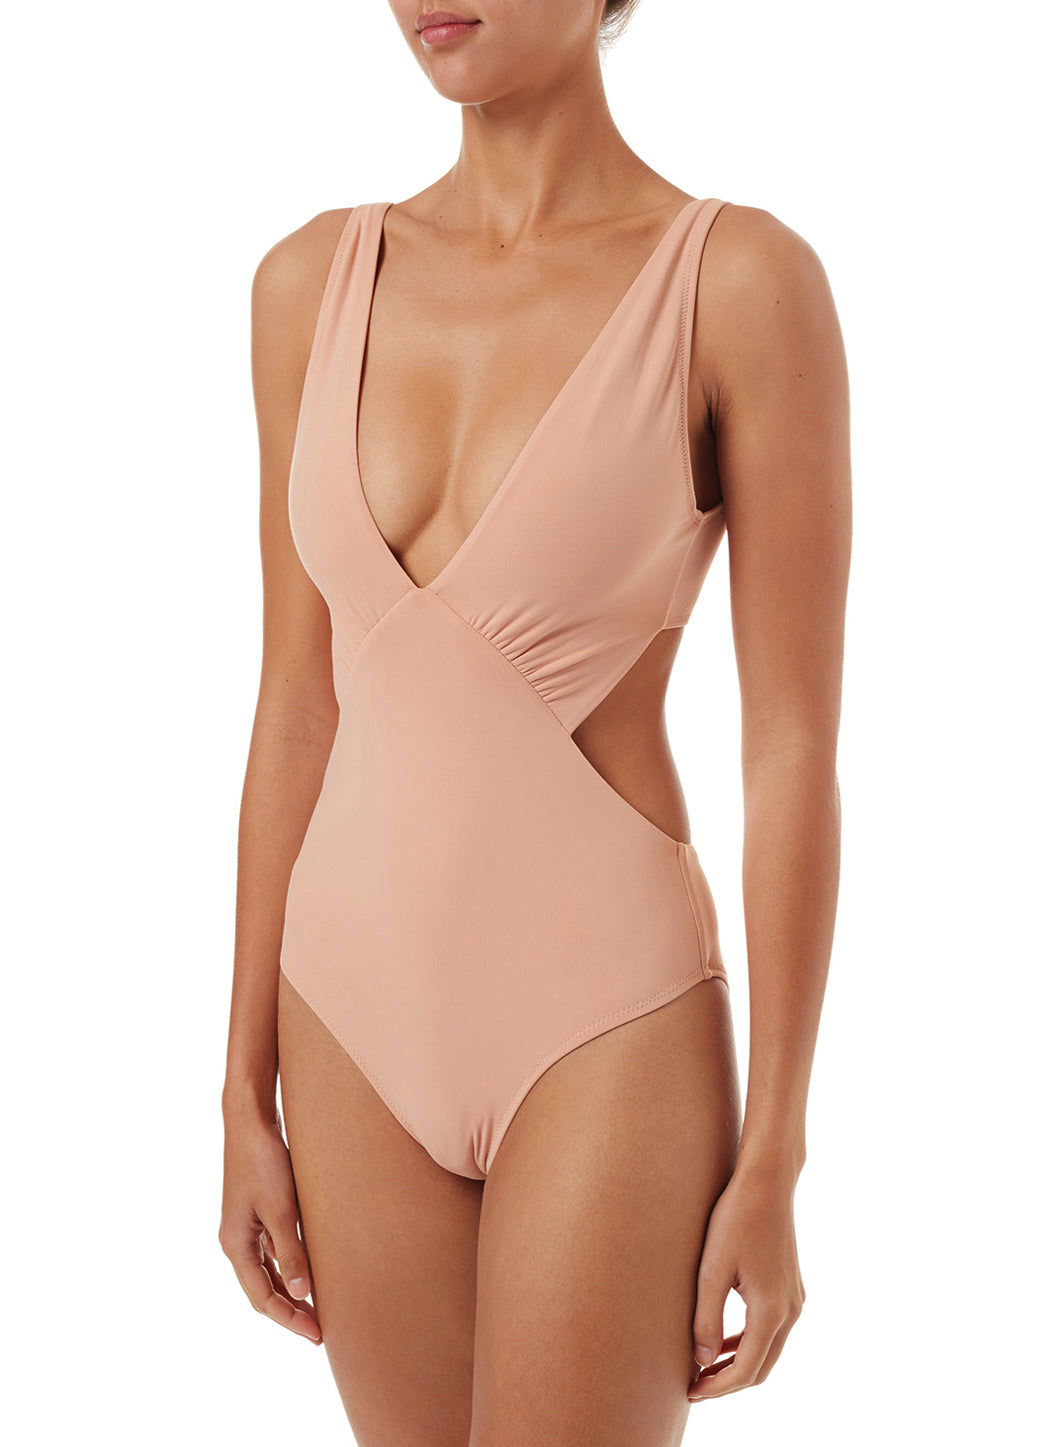 Delmar Tan Over The Shoulder V-Neck Cut Out Swimsuit